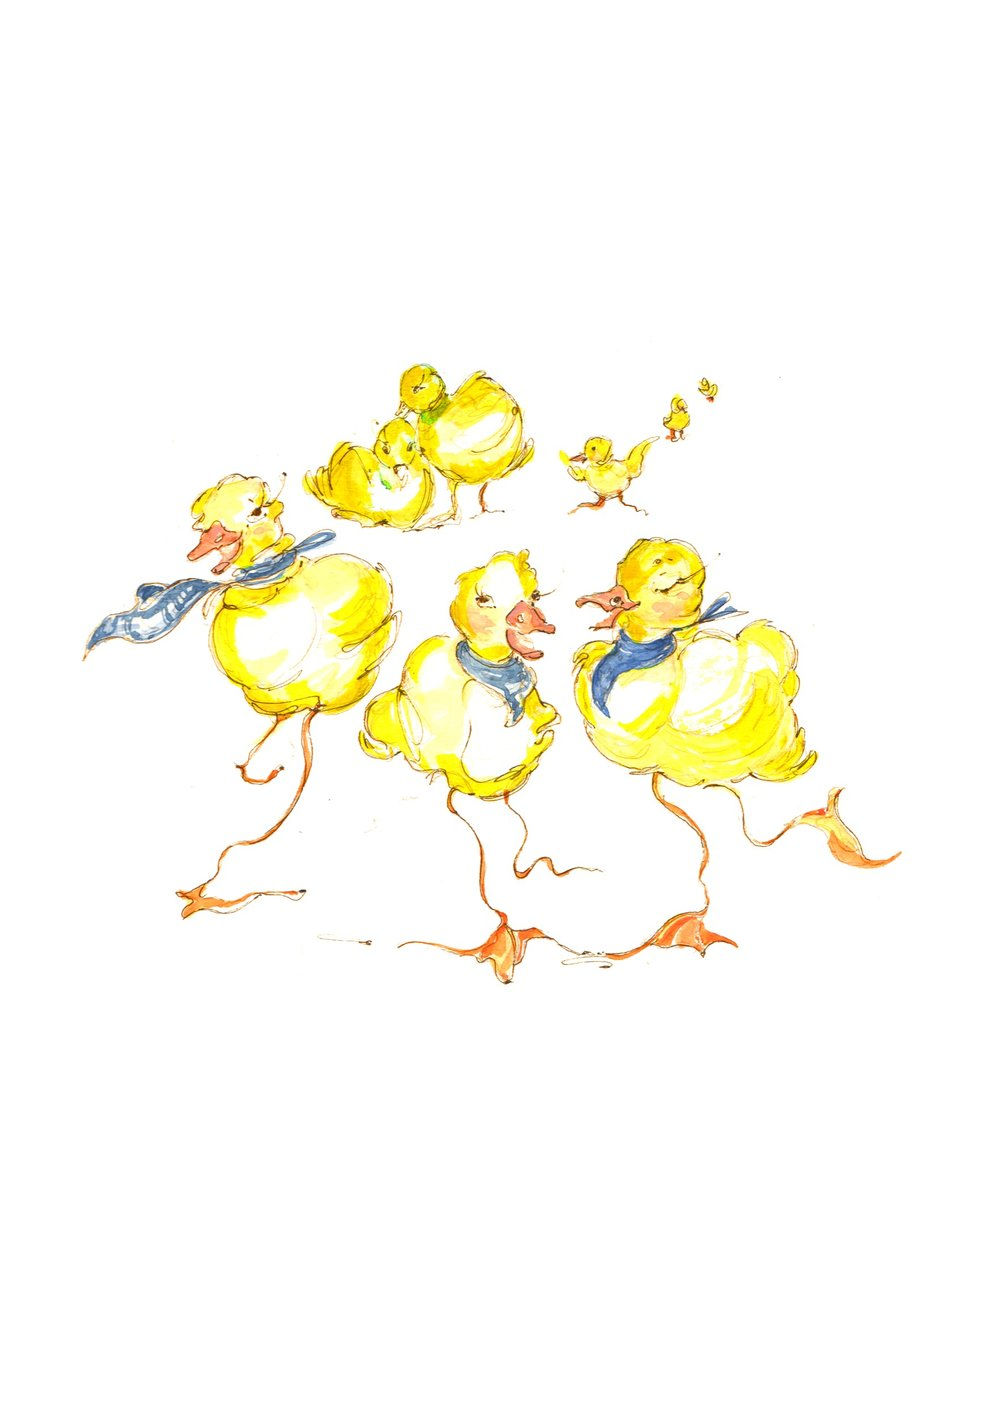 ORION_PUBLISHING_DUCKLINGS.01.jpg